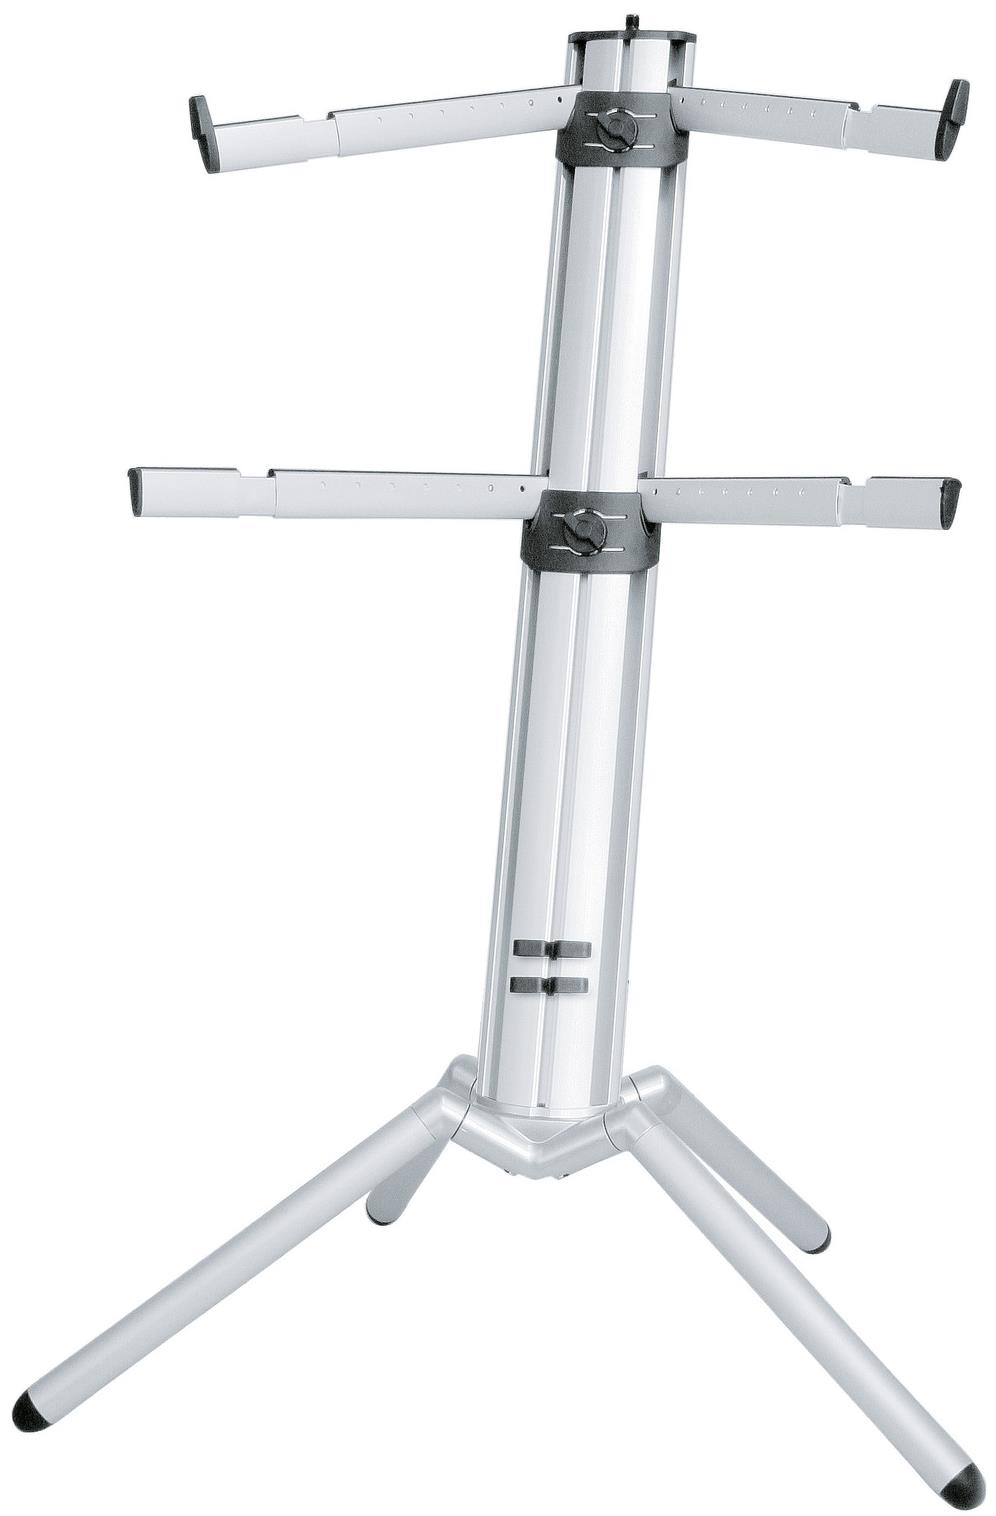 The Best Keyboard Stands 1 To 3 Tiers X T Column Amp A